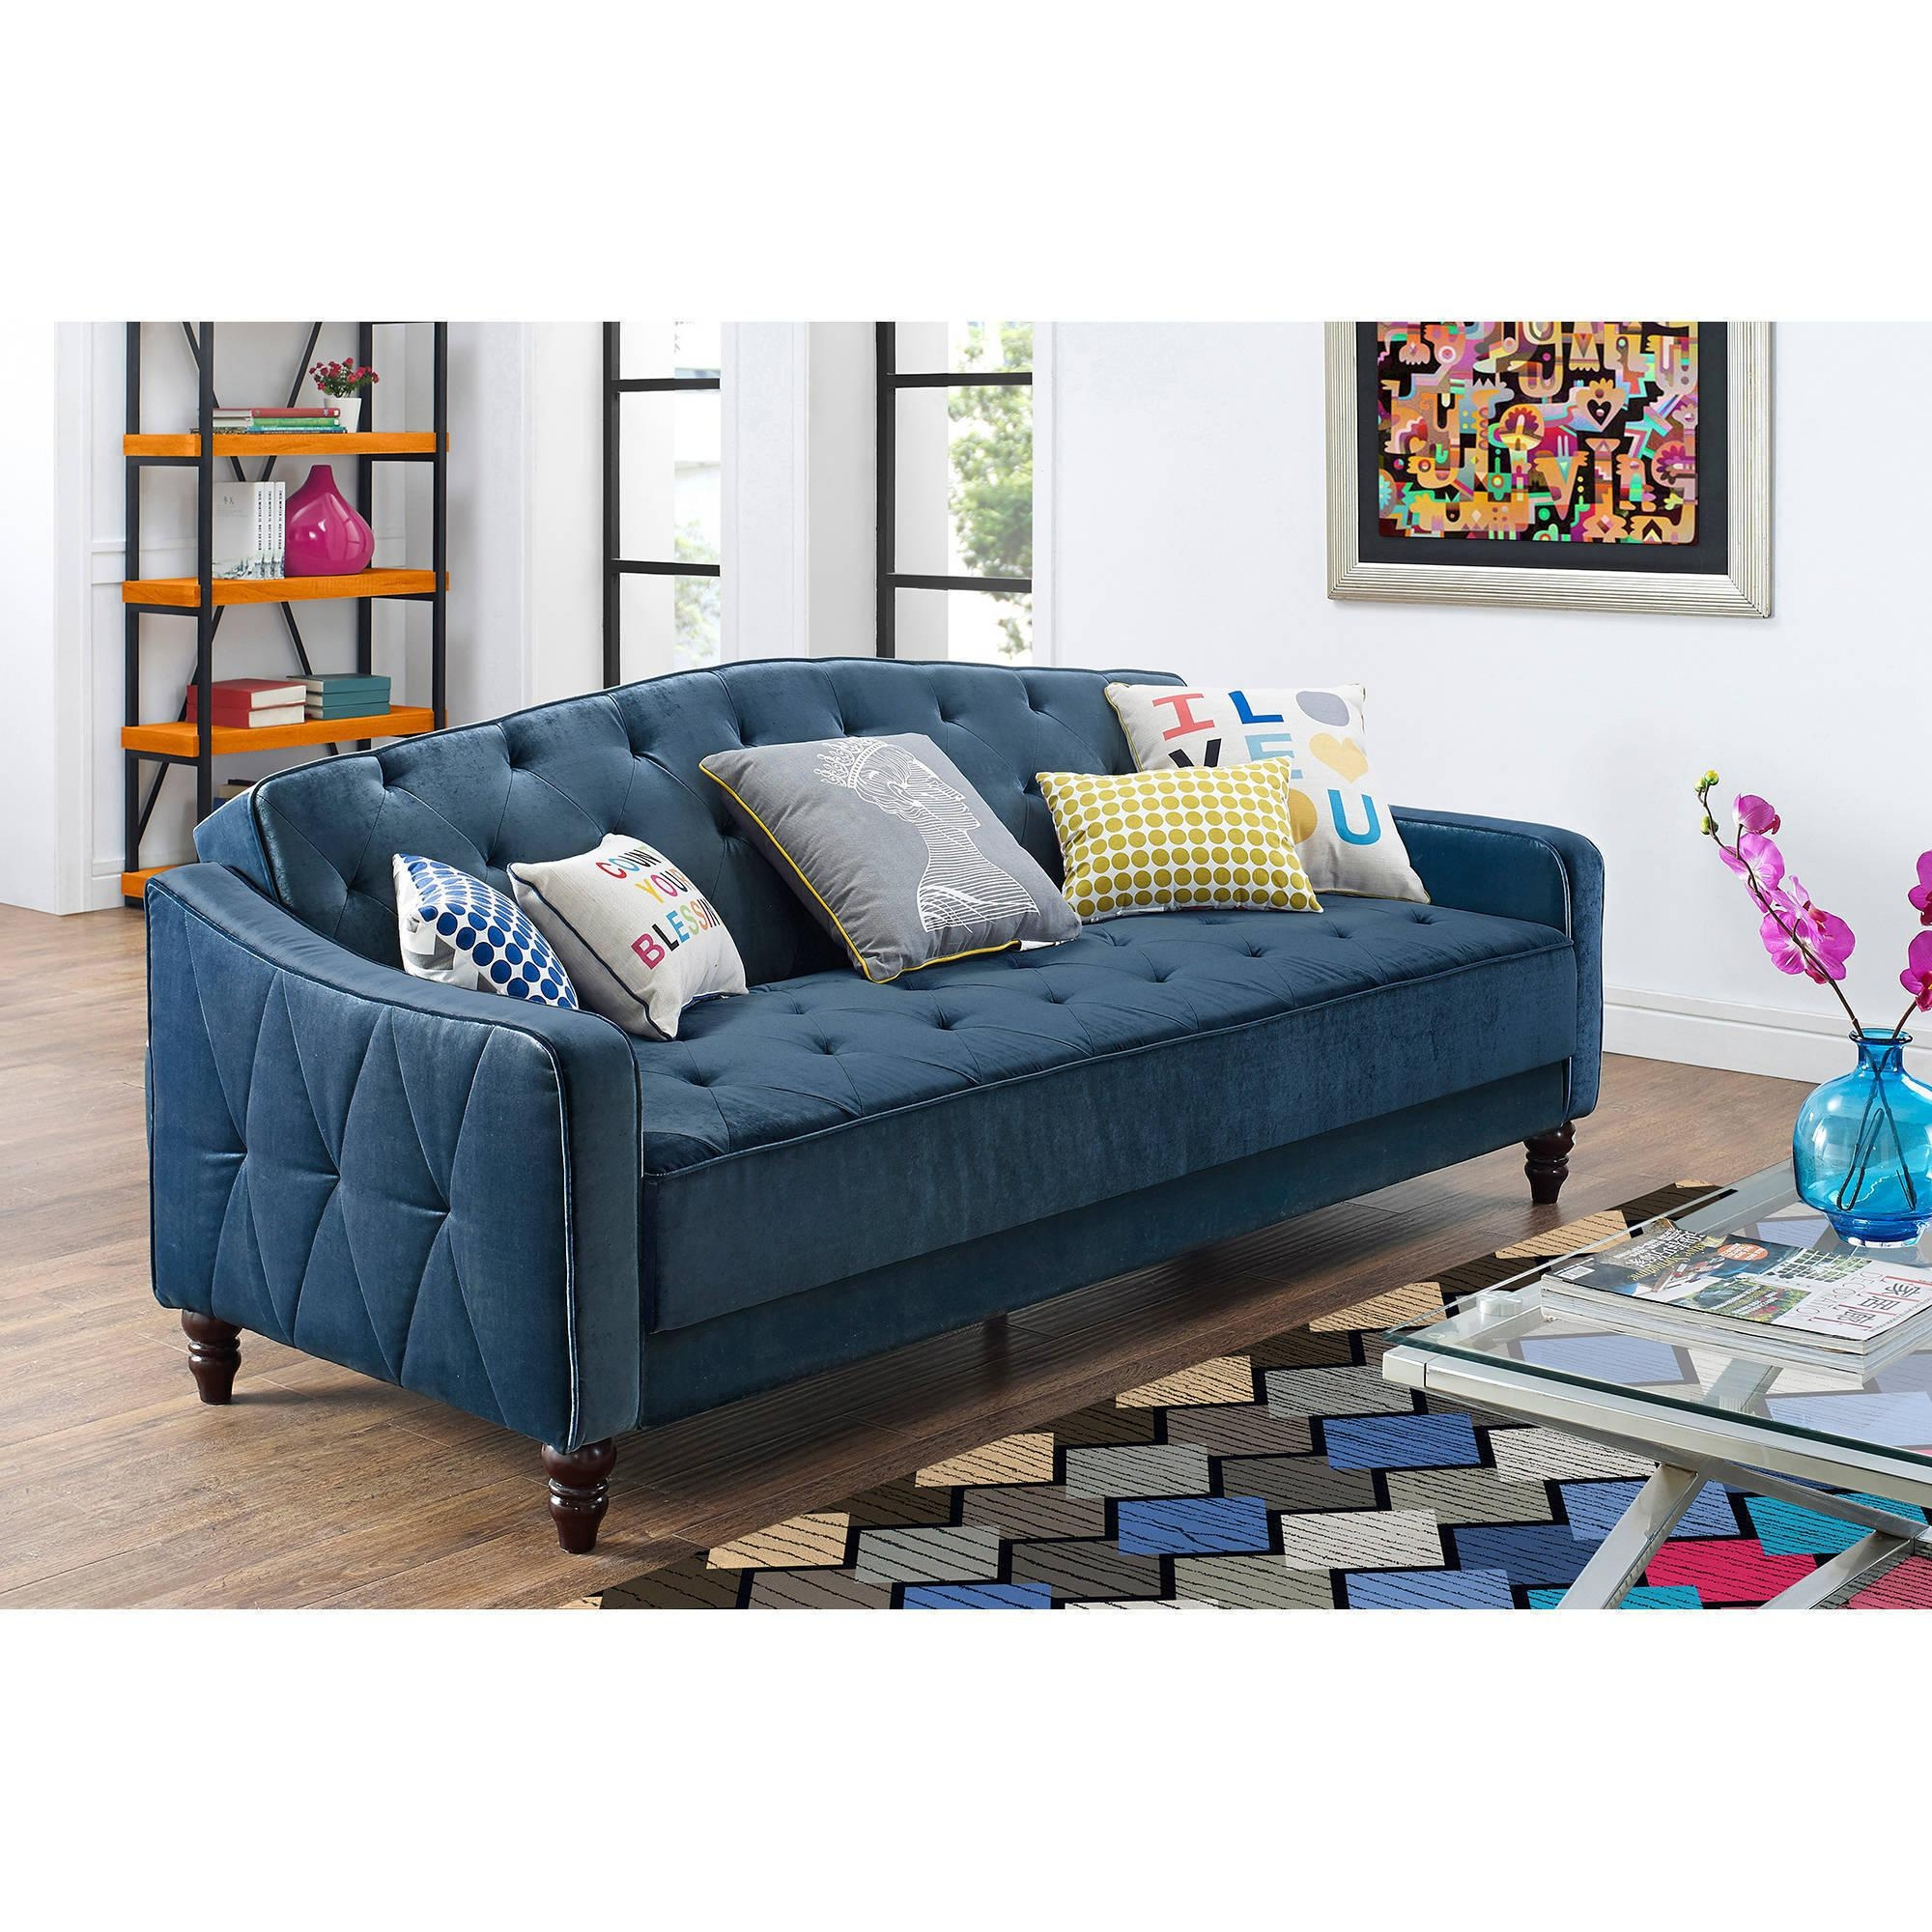 Mainstays Memory Foam Futon, Multiple Colors – Walmart With Colorful Sofas And Chairs (View 18 of 20)